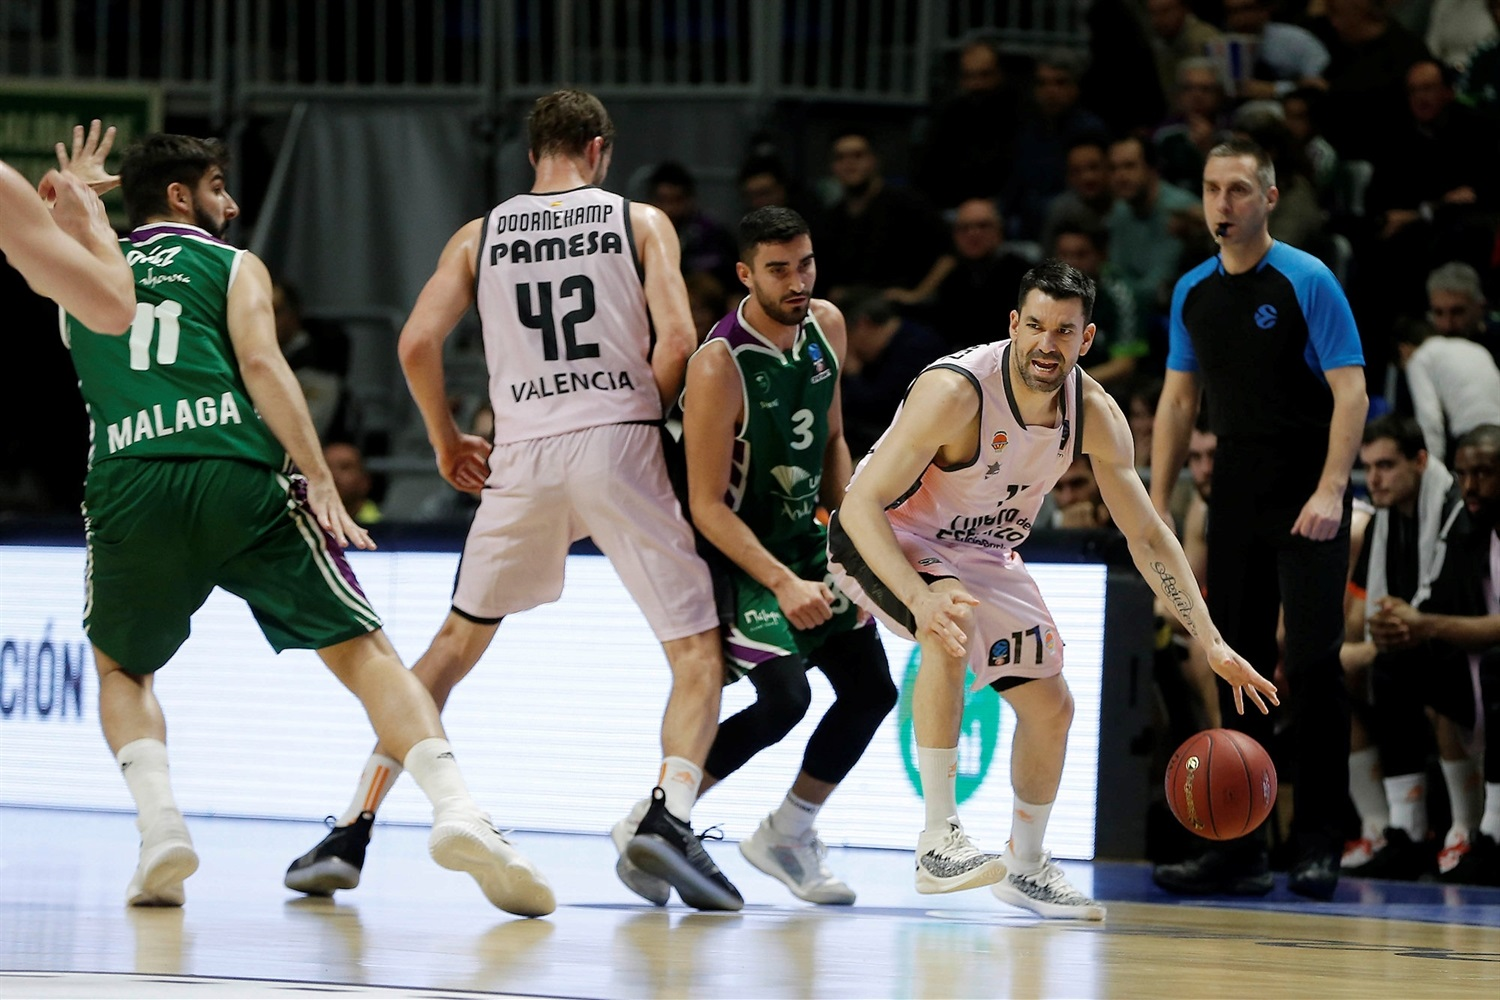 Rafa Martinez - Valencia Basket (photo Unicaja - Mariano Pozo) - EC18